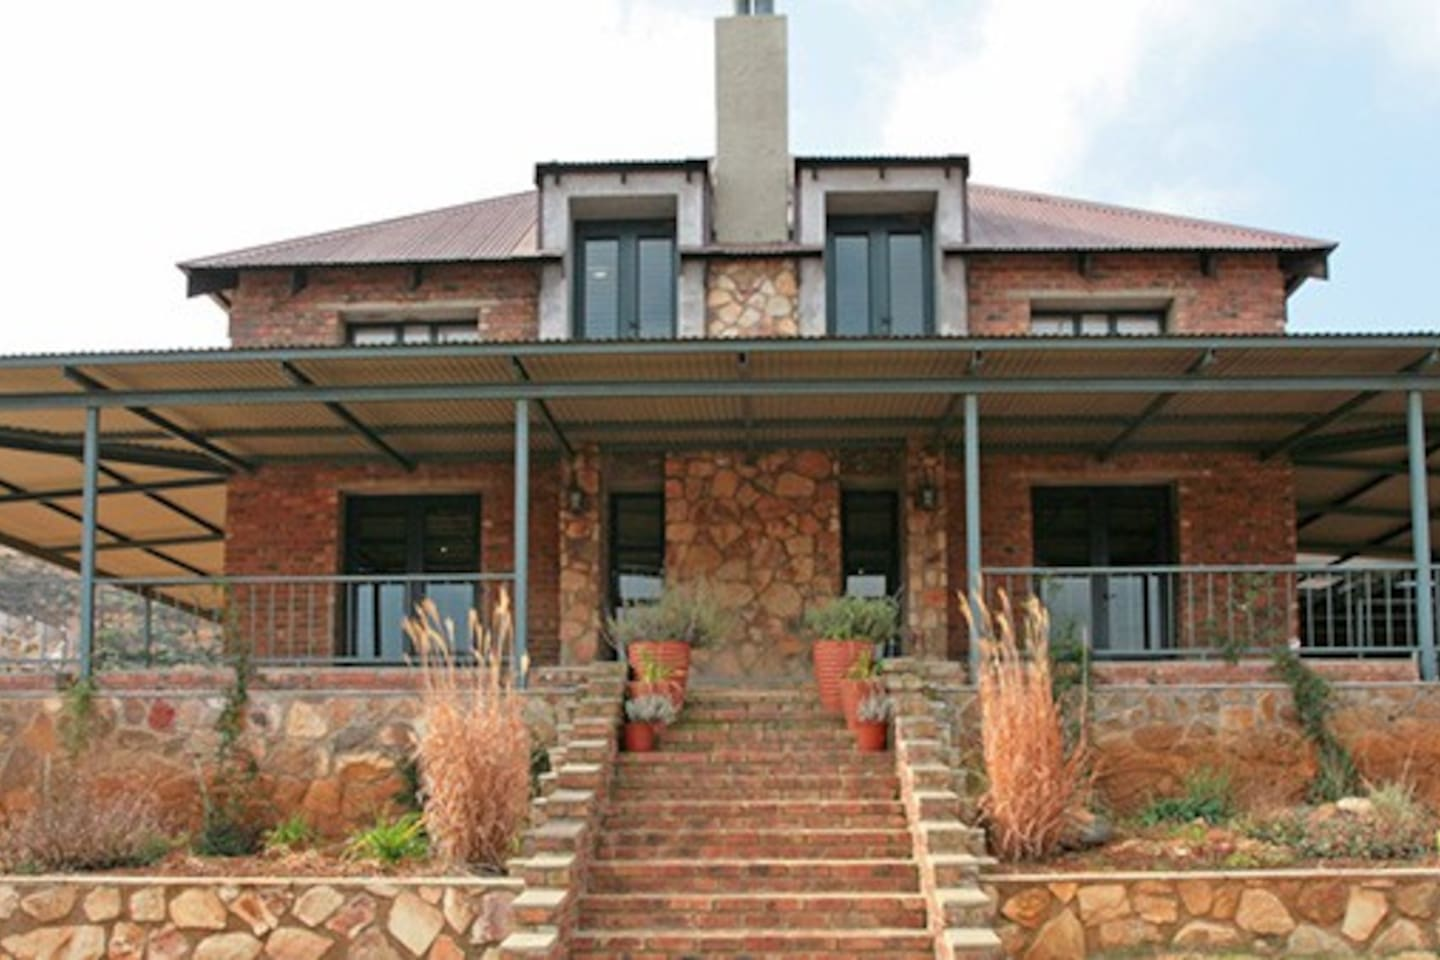 4 Bedroom Hillside House (Approx 440 sqm in size)